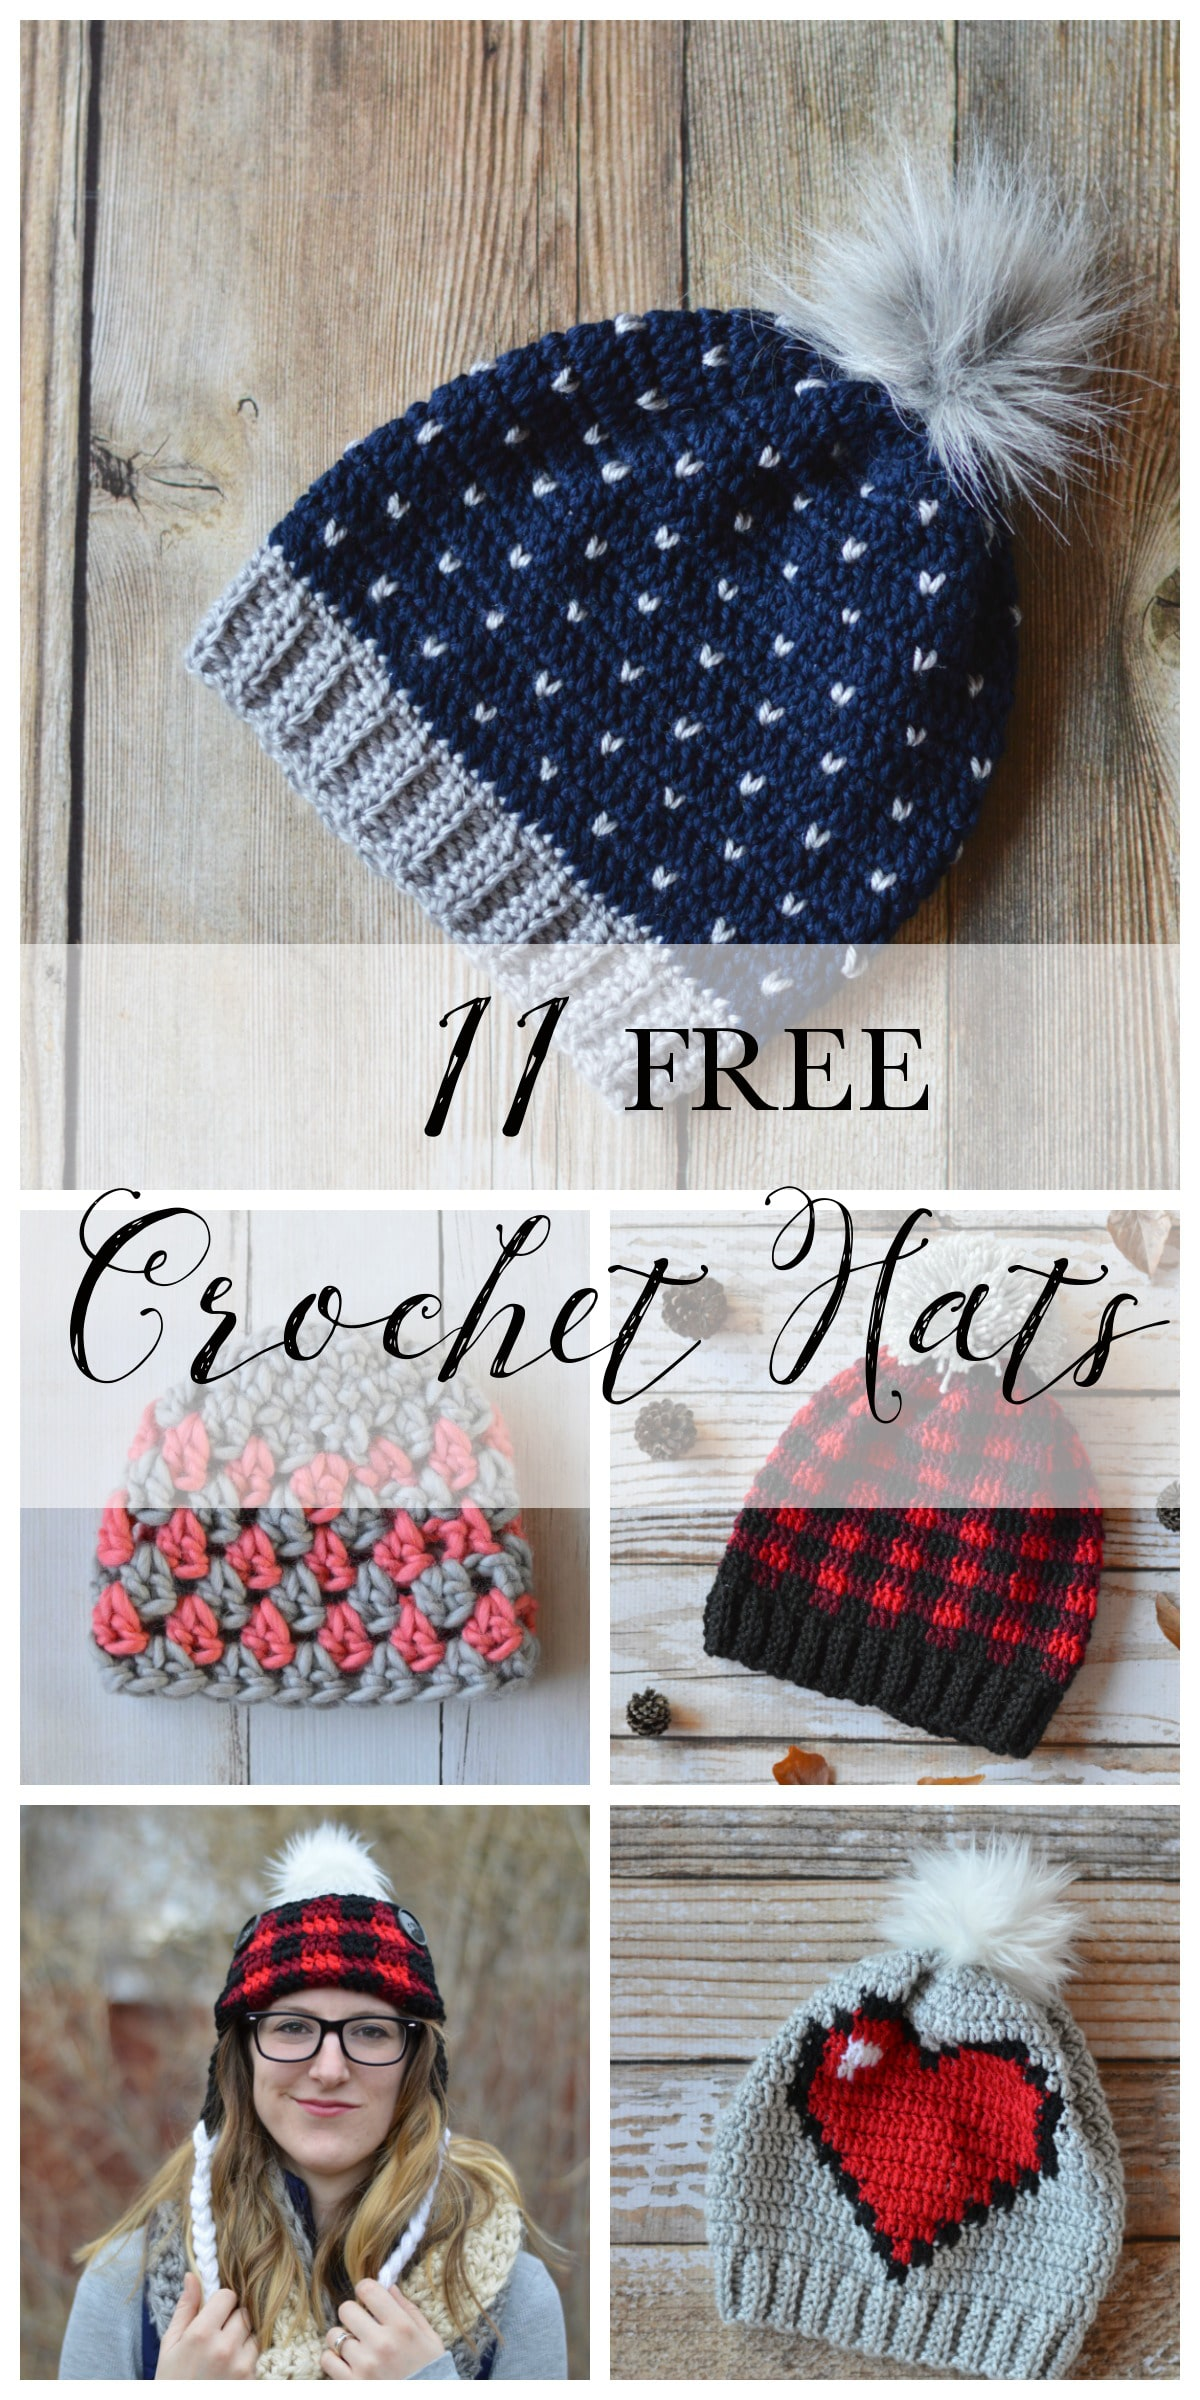 e3f1631e0f0 11 FREE Perfect Crochet Hats for Fall - Fill your weekend crochet to-do list